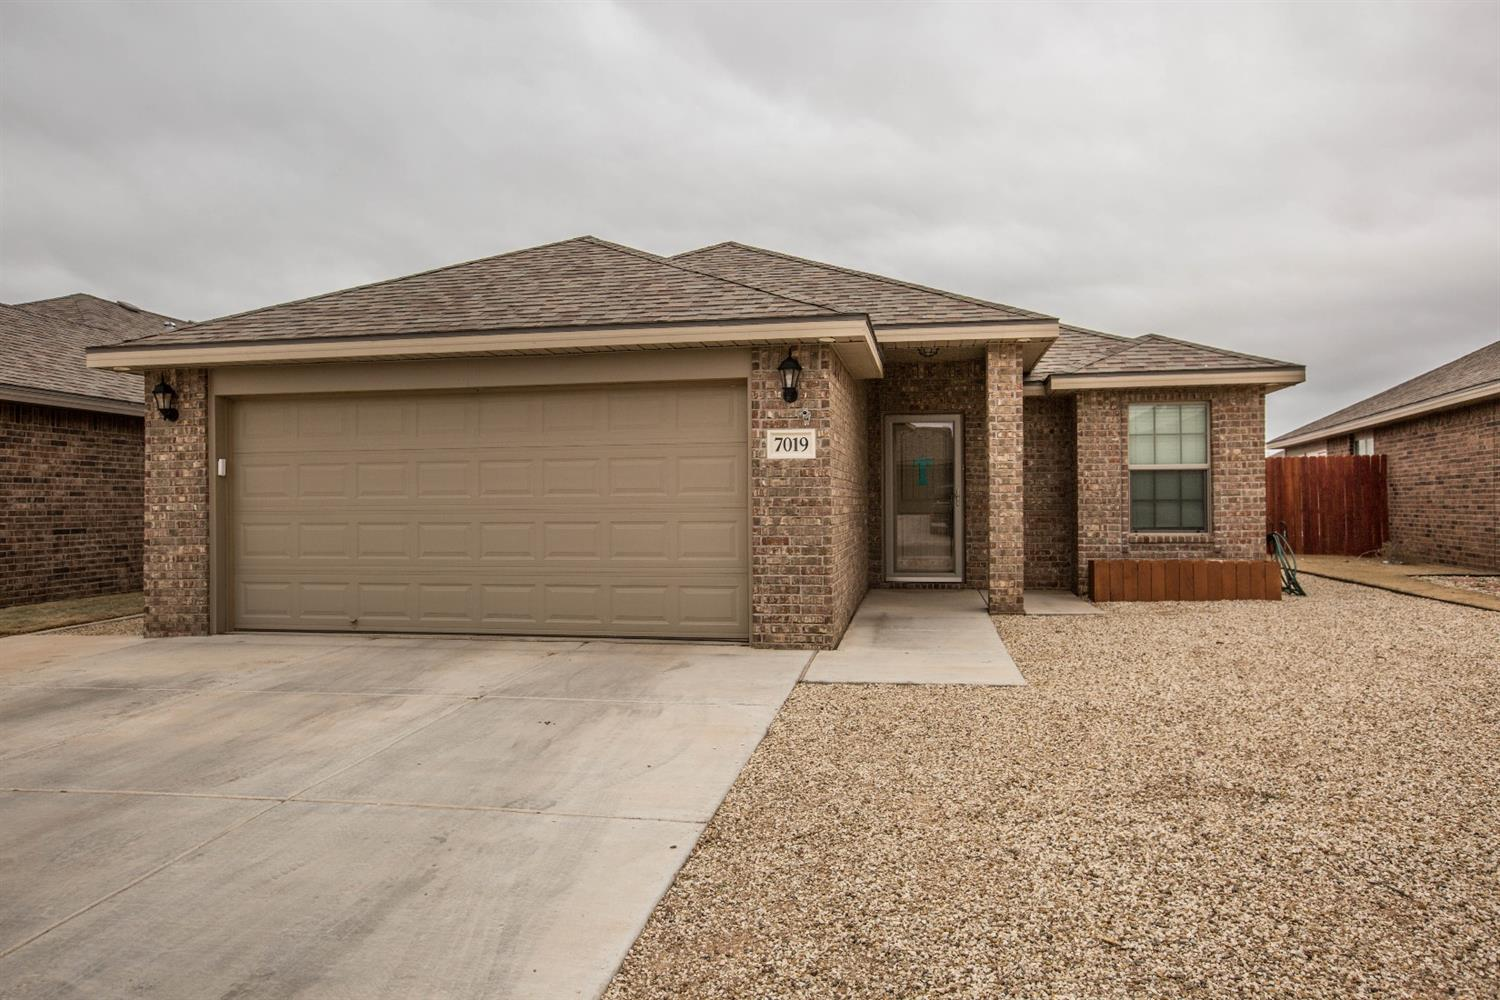 7019 35th Street, Lubbock in Lubbock County, TX 79424 Home for Sale